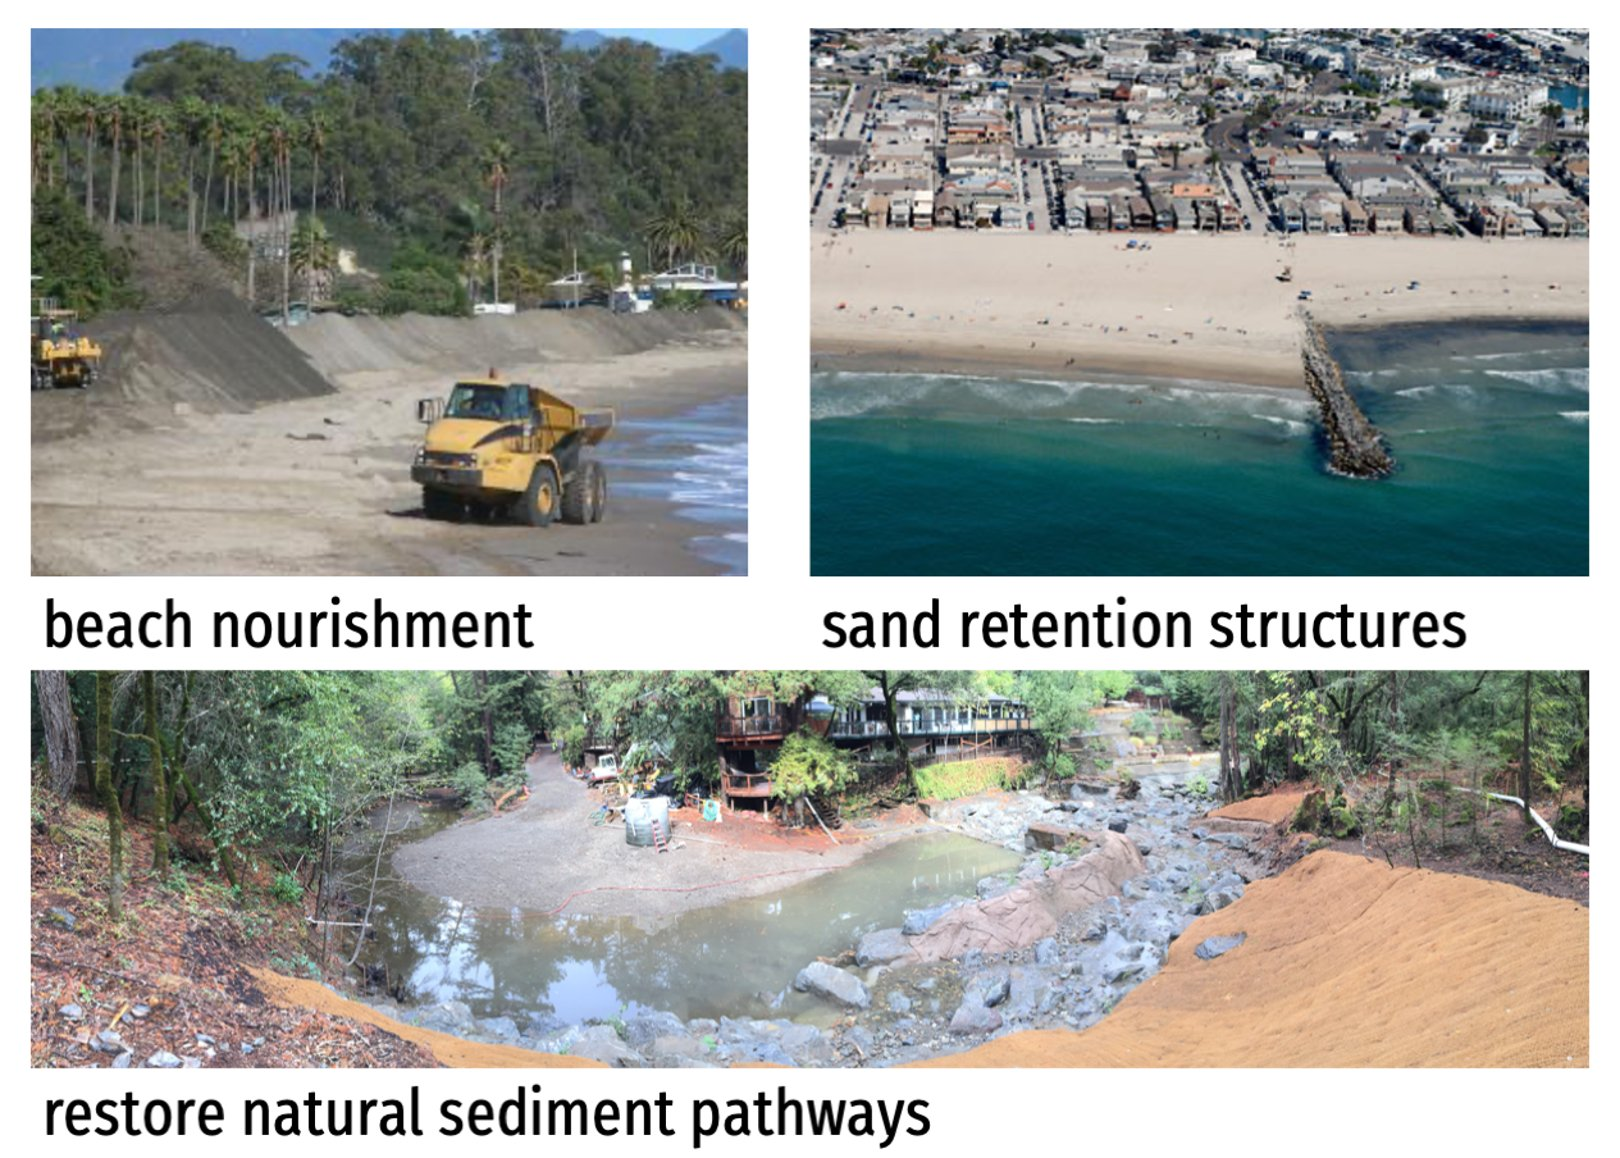 Collage diagram, showing images of dump trucks on a beach, aerial view of beach and pier, and a stream bank being restored